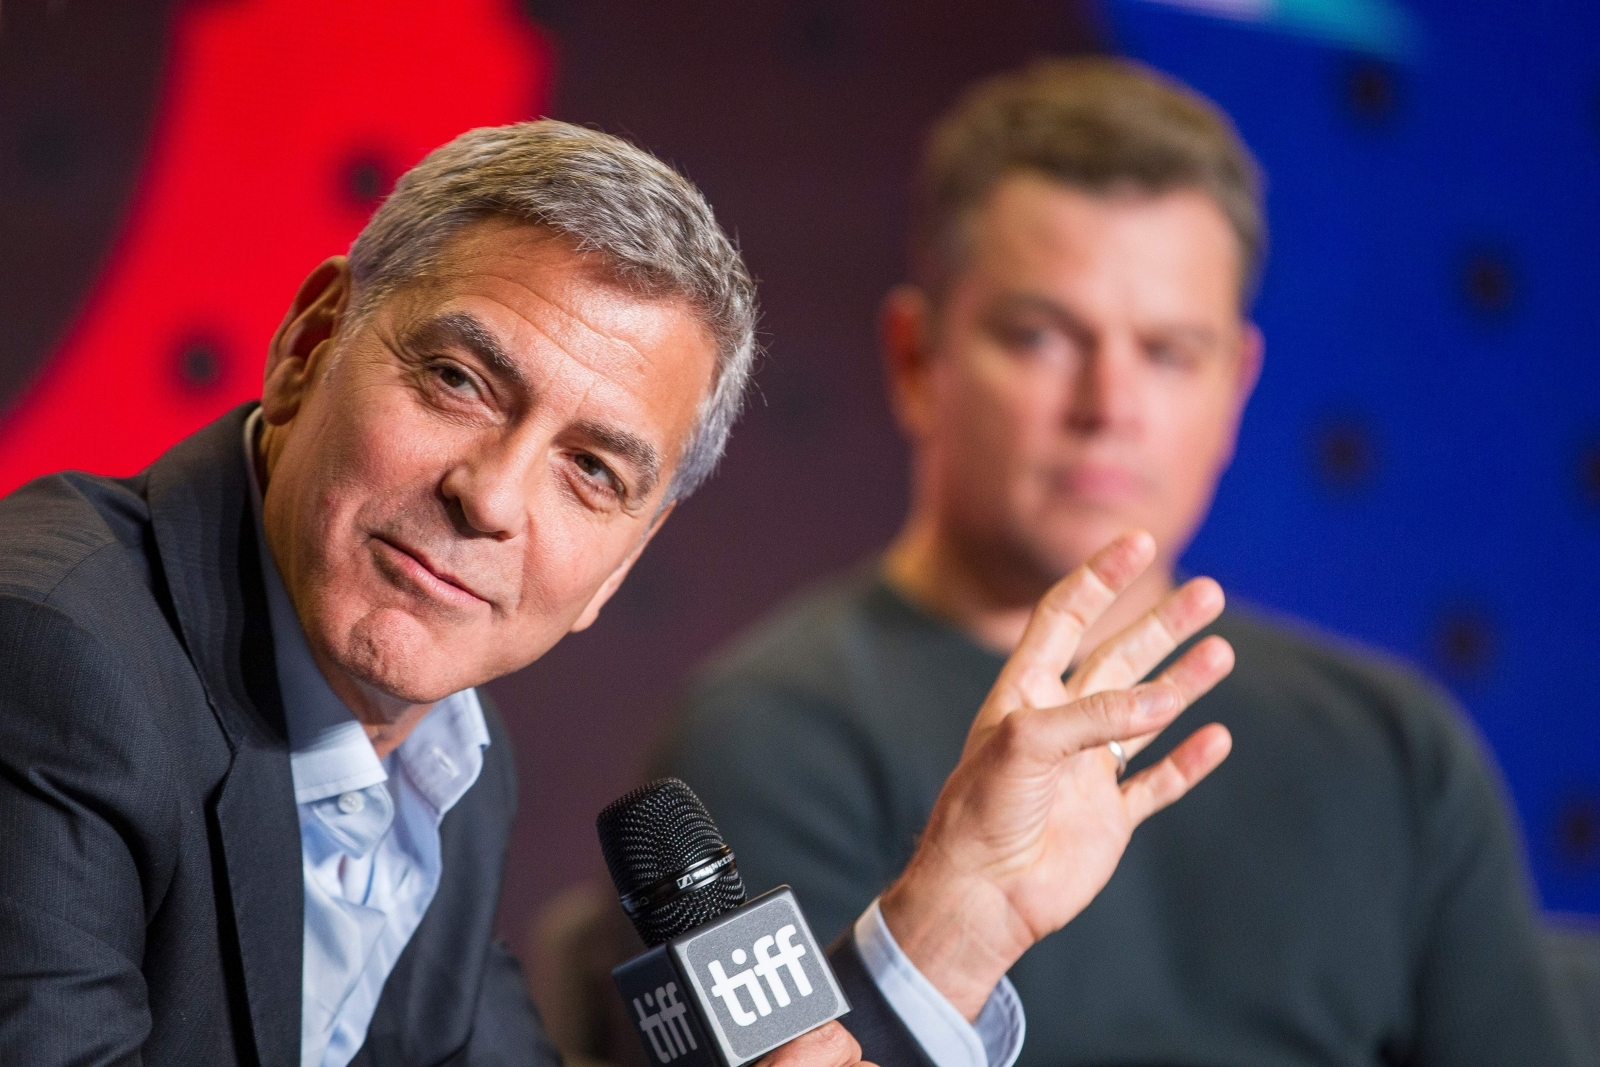 George Clooney slams Trump for 'Hollywood elite' remarks